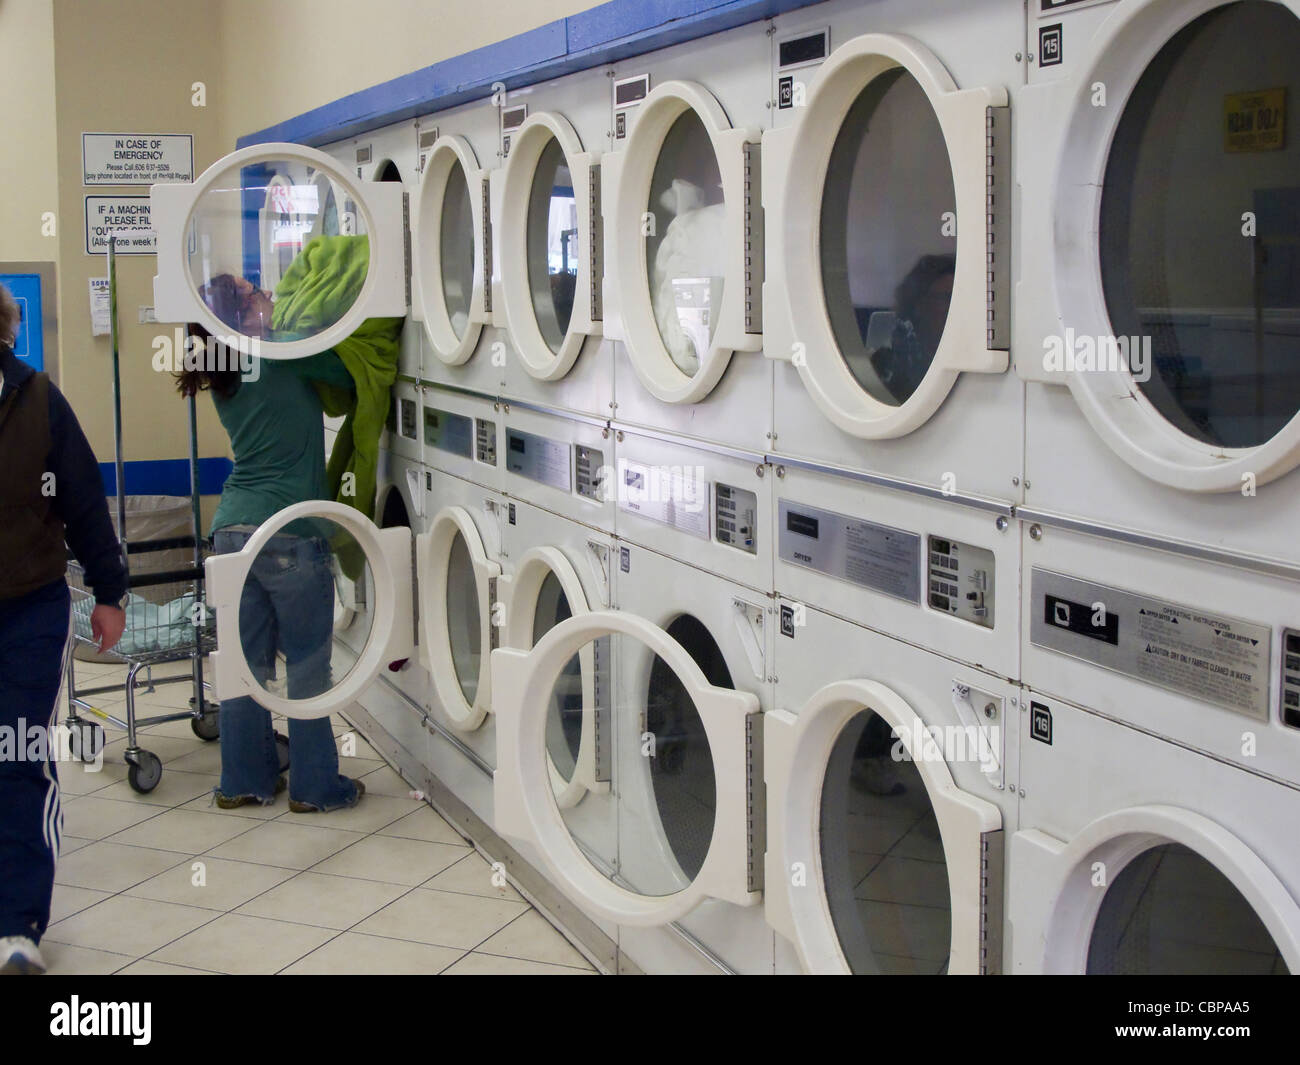 Woman loading dryer in laundromat - Stock Image